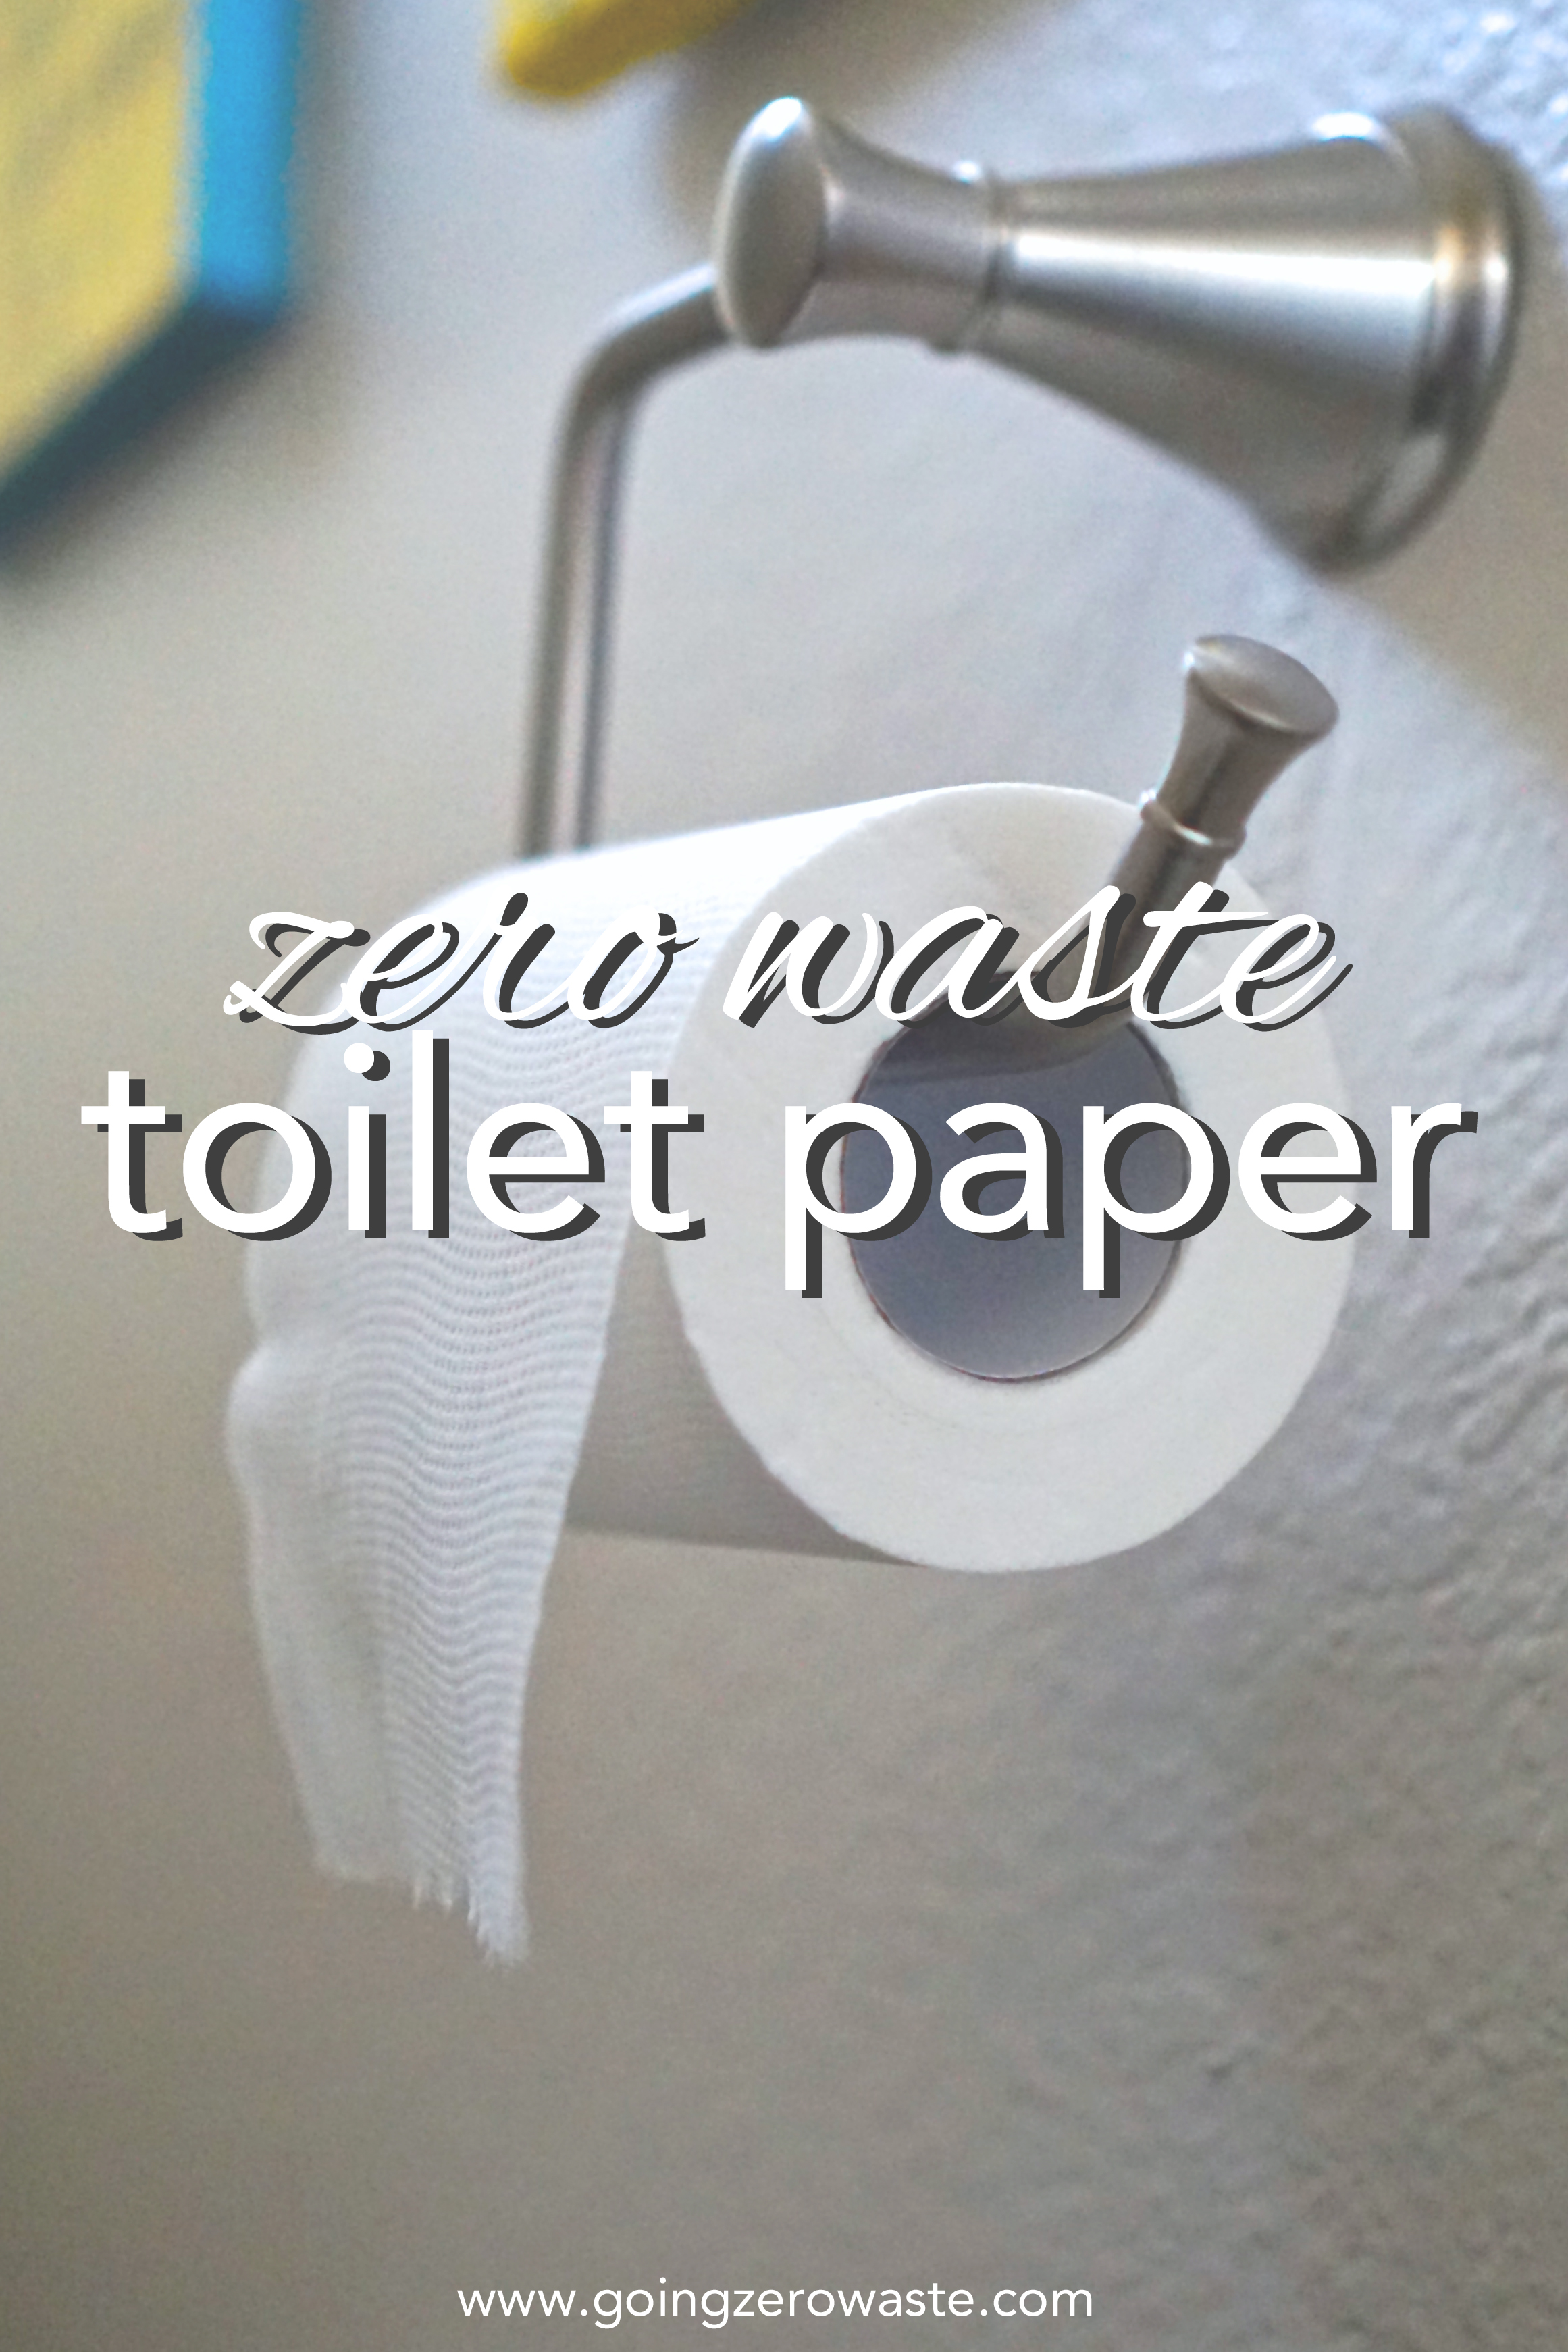 What do you use for toilet paper when you're zero waste? Find out more about family cloth, bidet attachments, and eco-friendly toilet paper on www.goingzerowaste.com